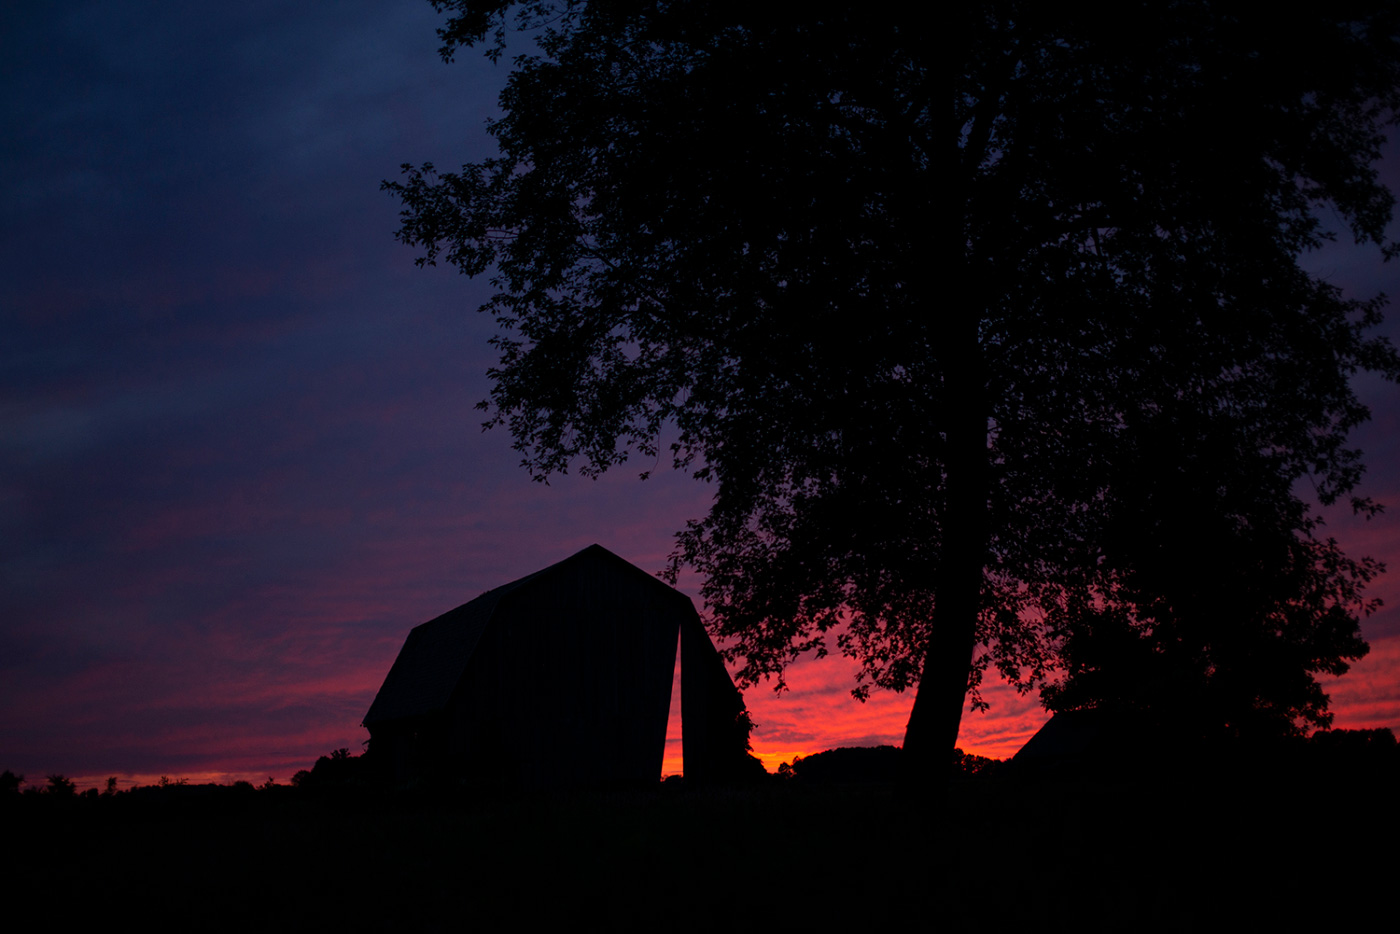 Silhouette of Secret Sky, a barn with a sliver cut out of it